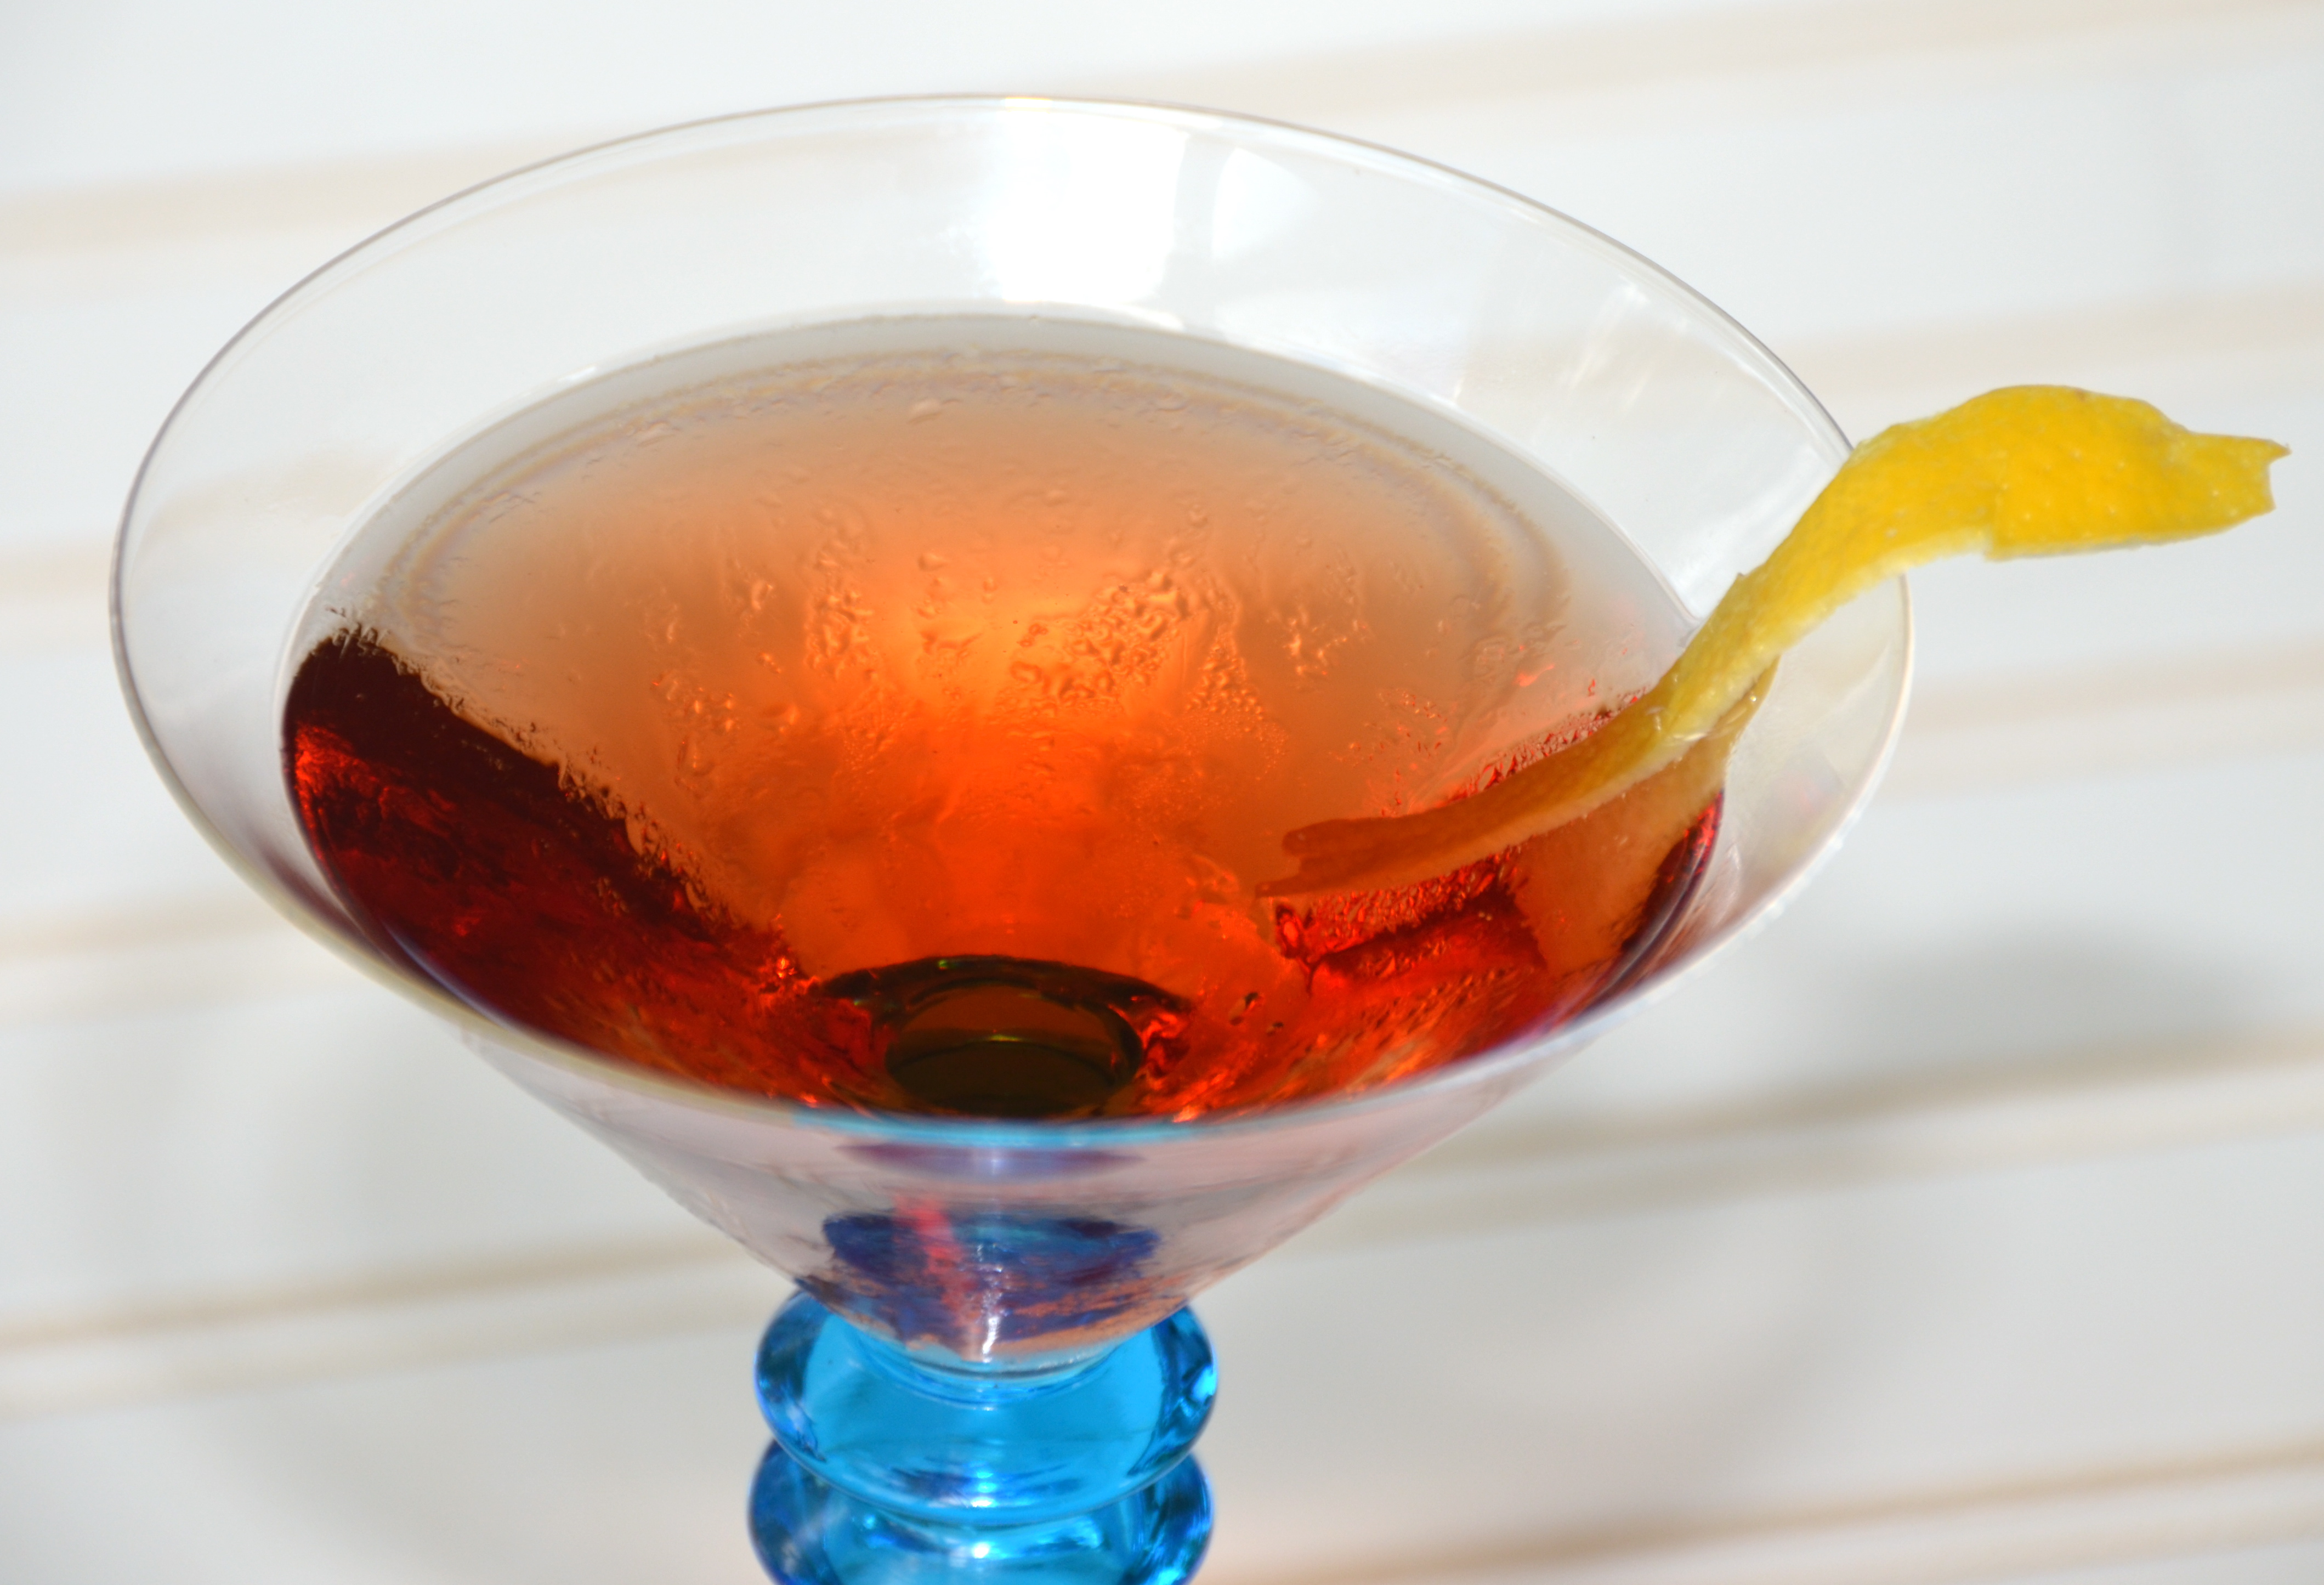 The Dubonnet Cocktail Kicking Back To New Music From Rich